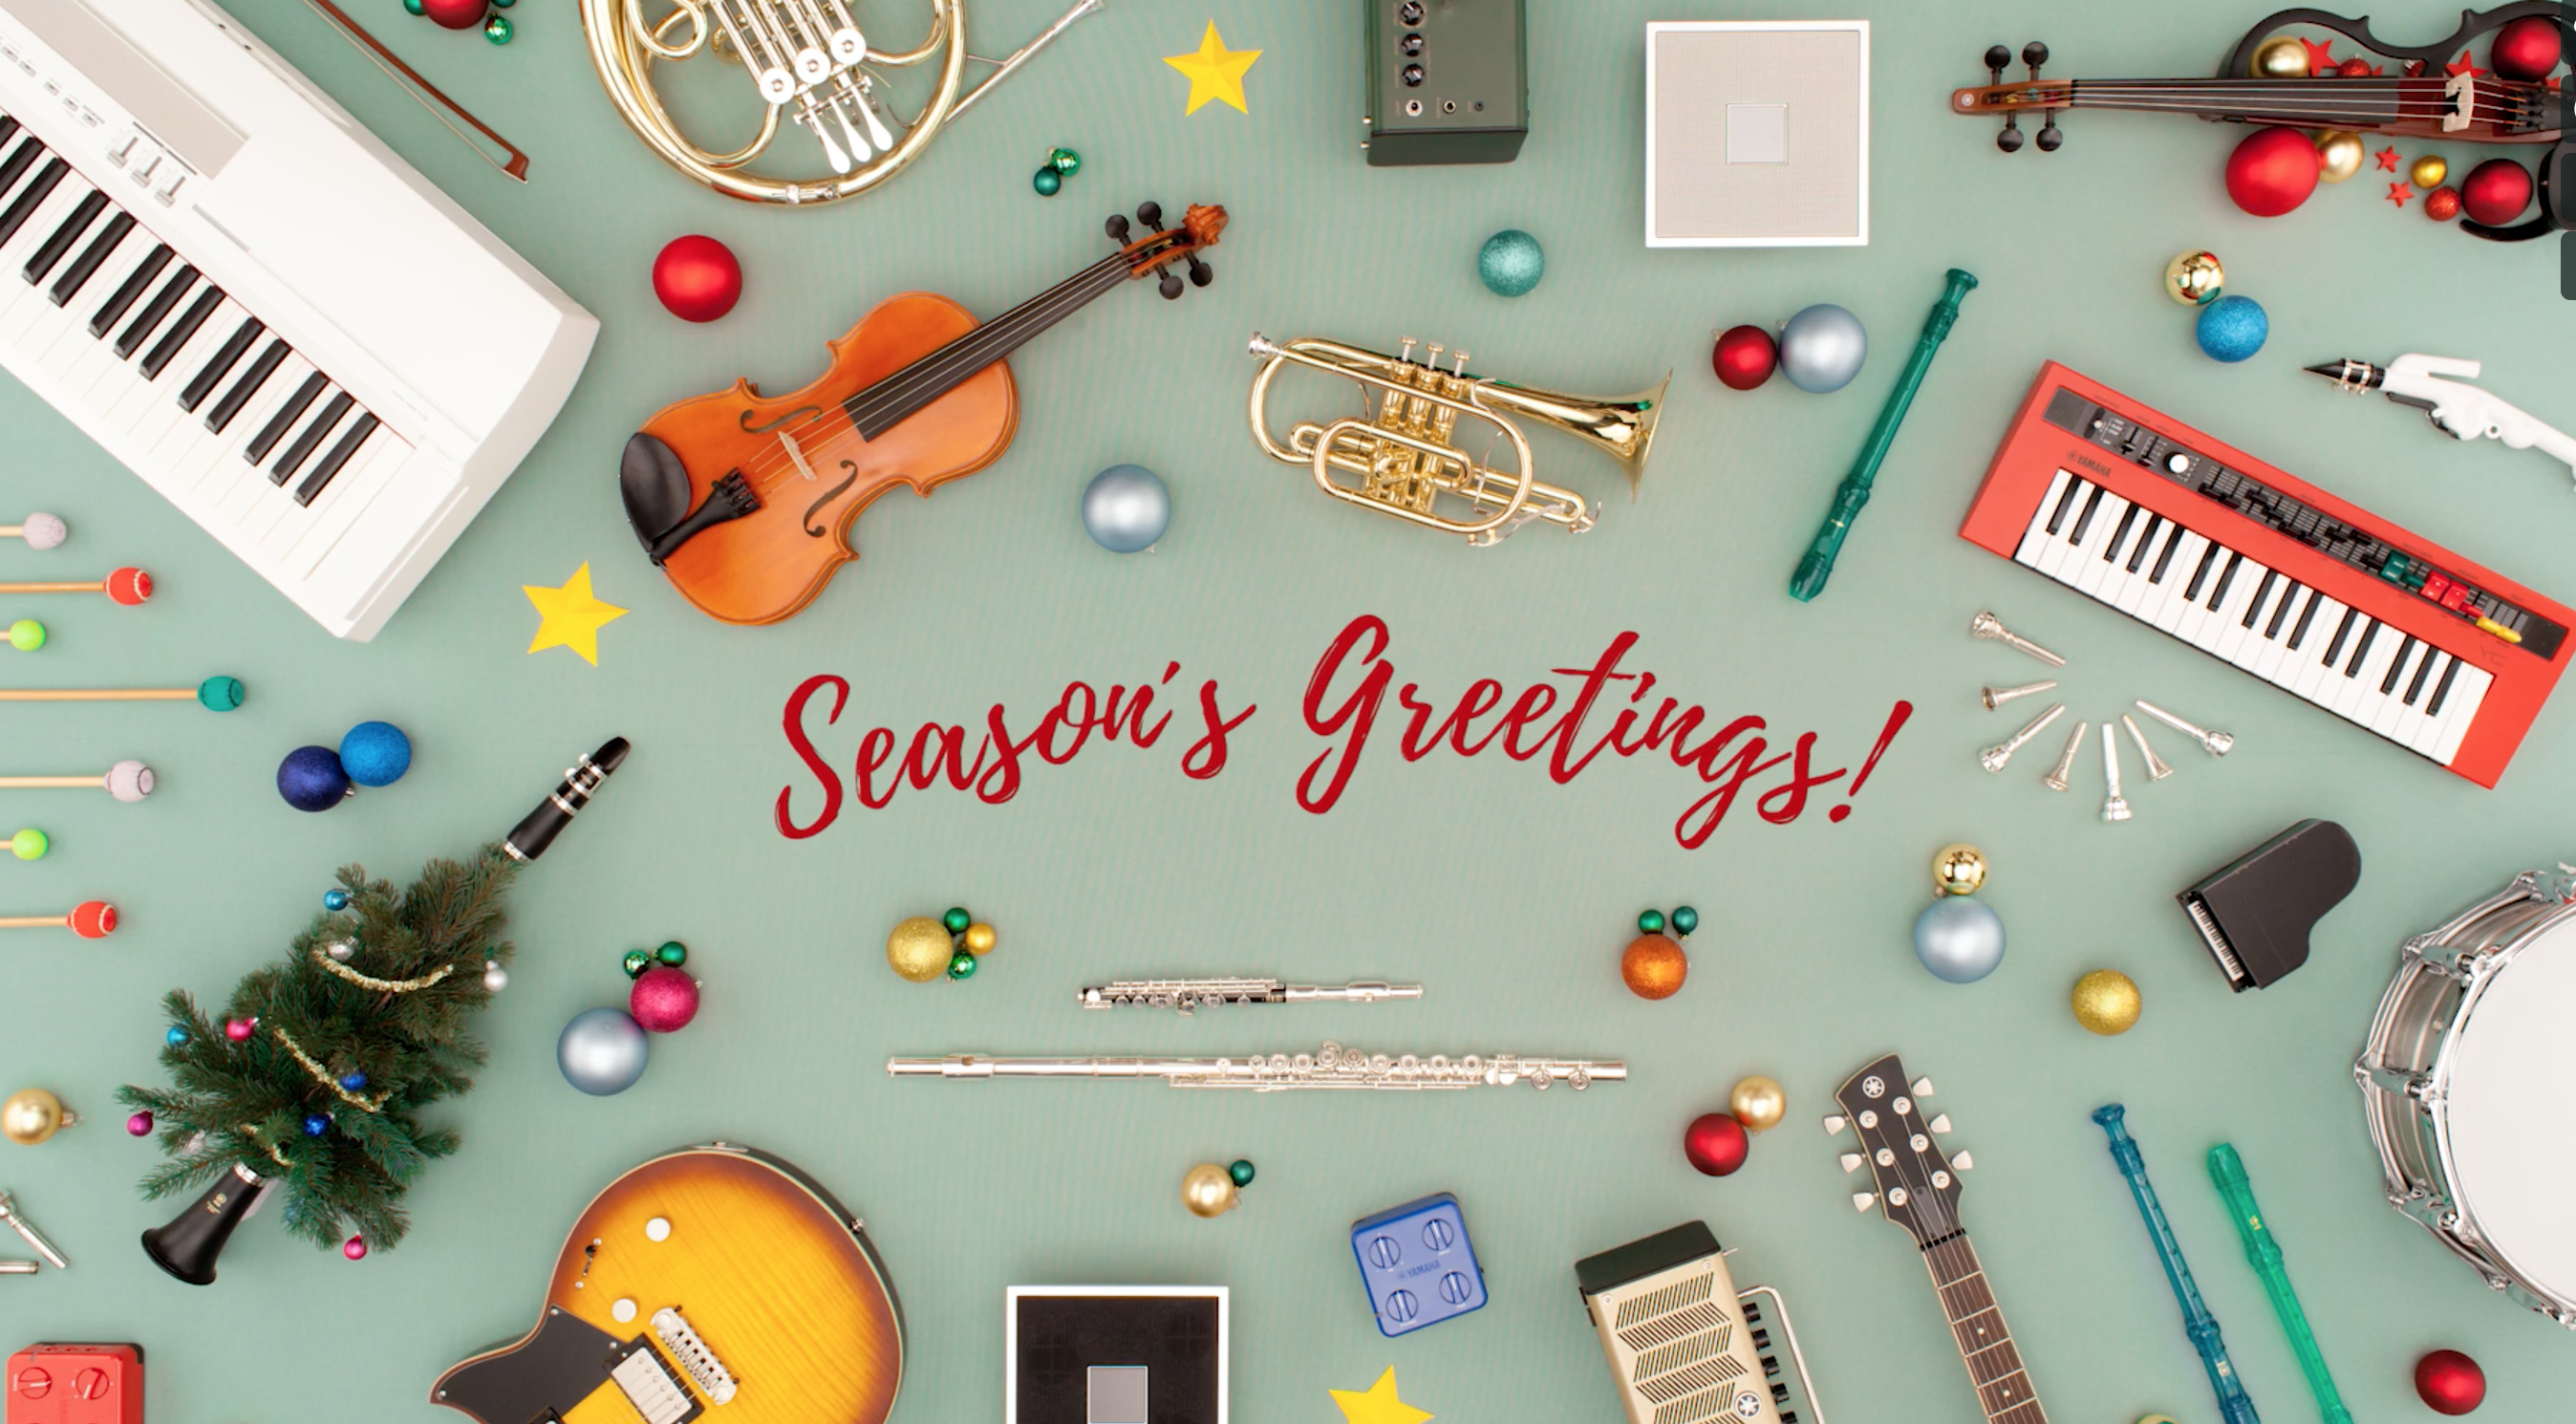 """Season's Greetings"" of Yamaha"